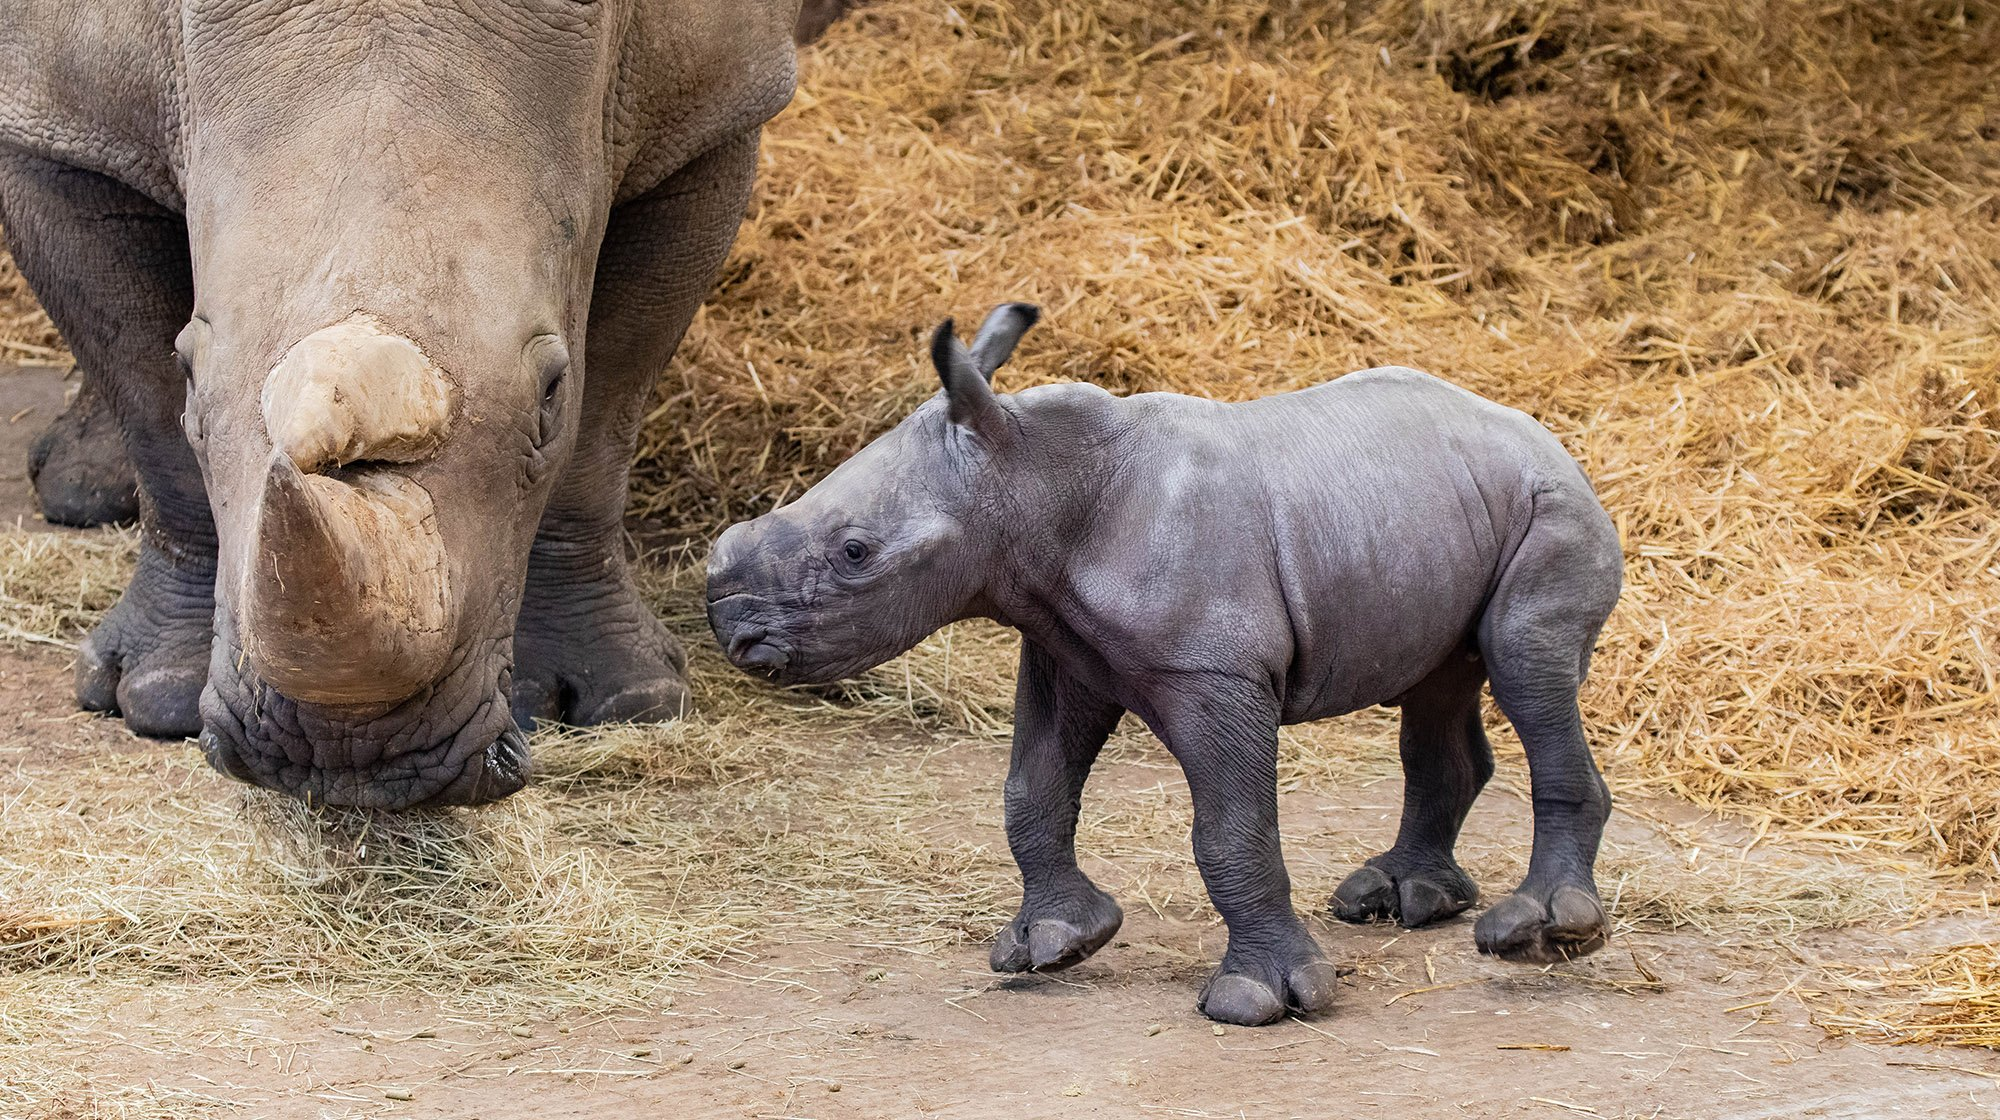 Whipsnade Zoo has welcomed a new rare white rhino!